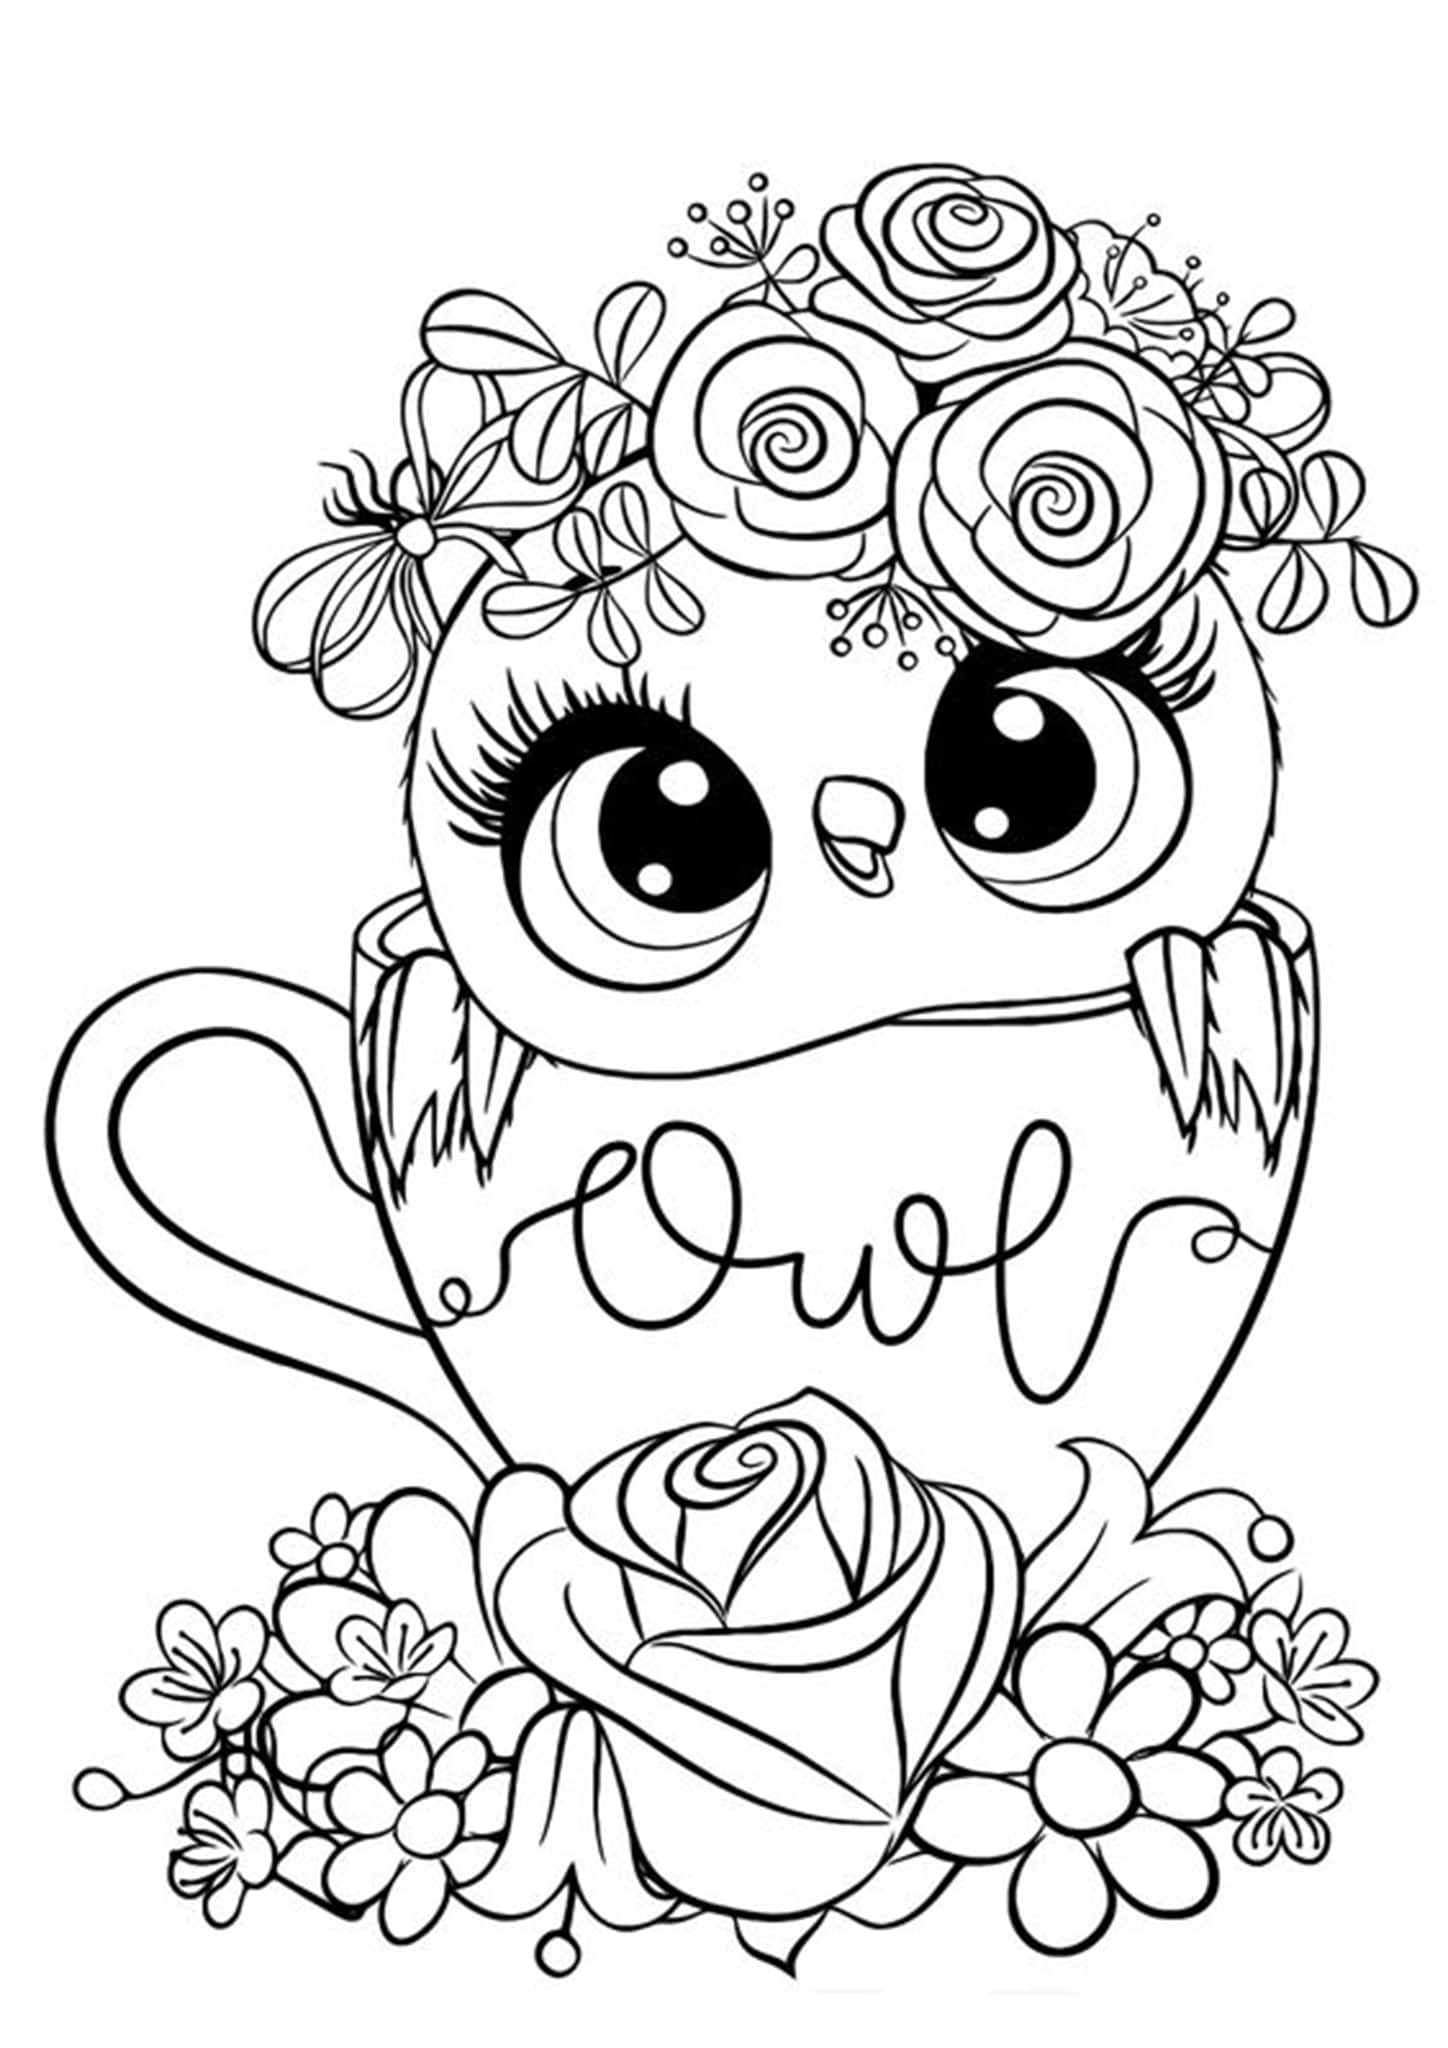 kids easy coloring book get this easy printable animals coloring pages for book coloring kids easy